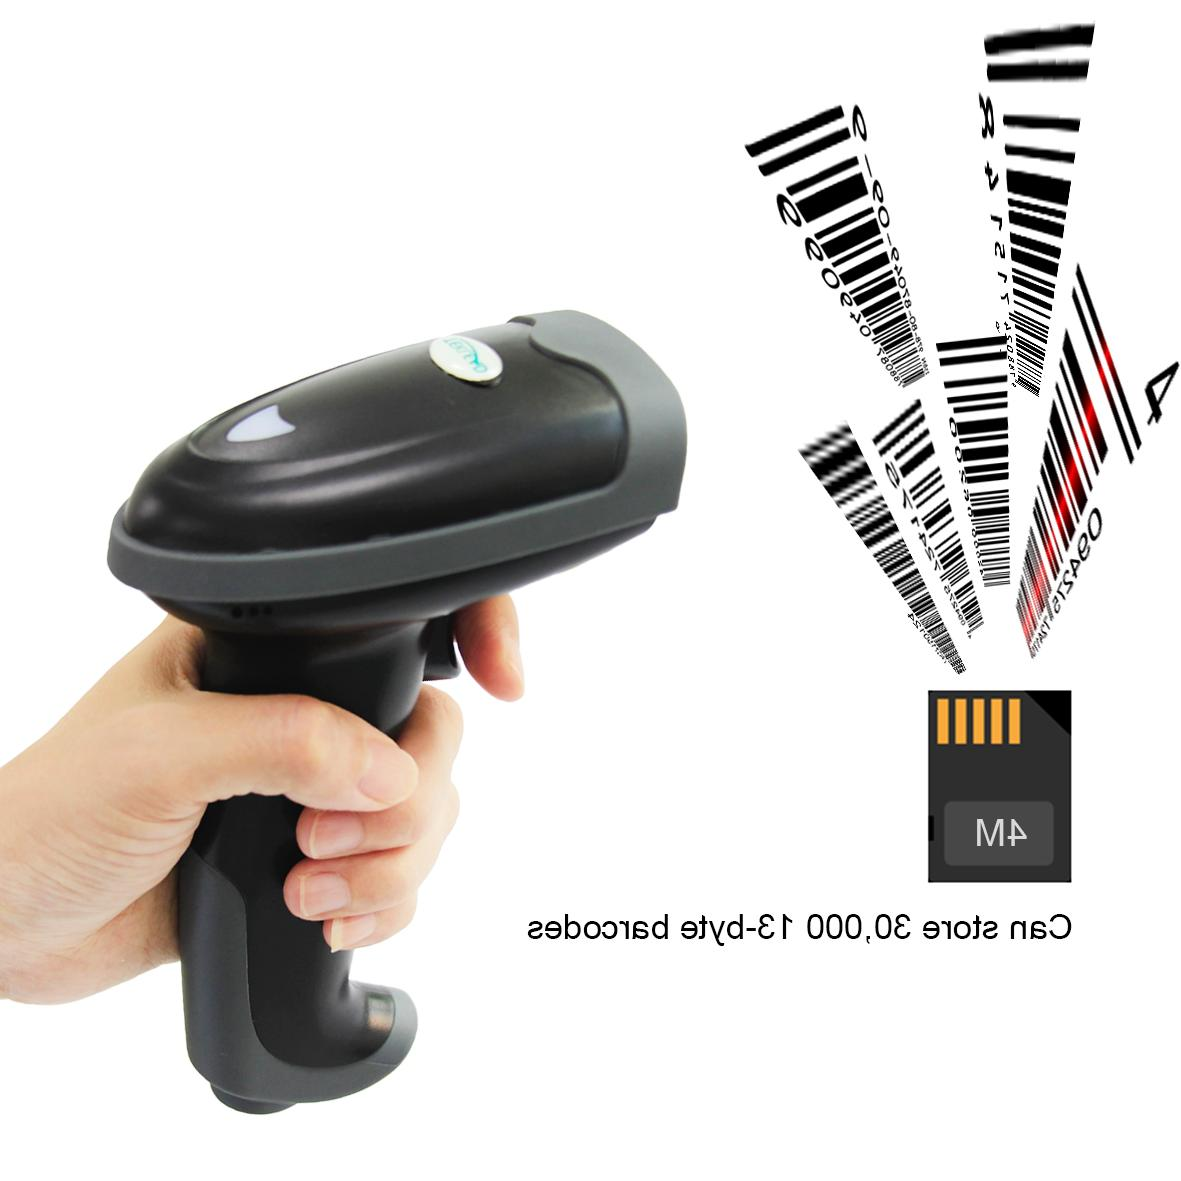 TEKLEAD Bluetooth Laser <font><b>Barcode</b></font> <font><b>Scanner</b></font> with Stand 1D Bar for Android tablet iPad